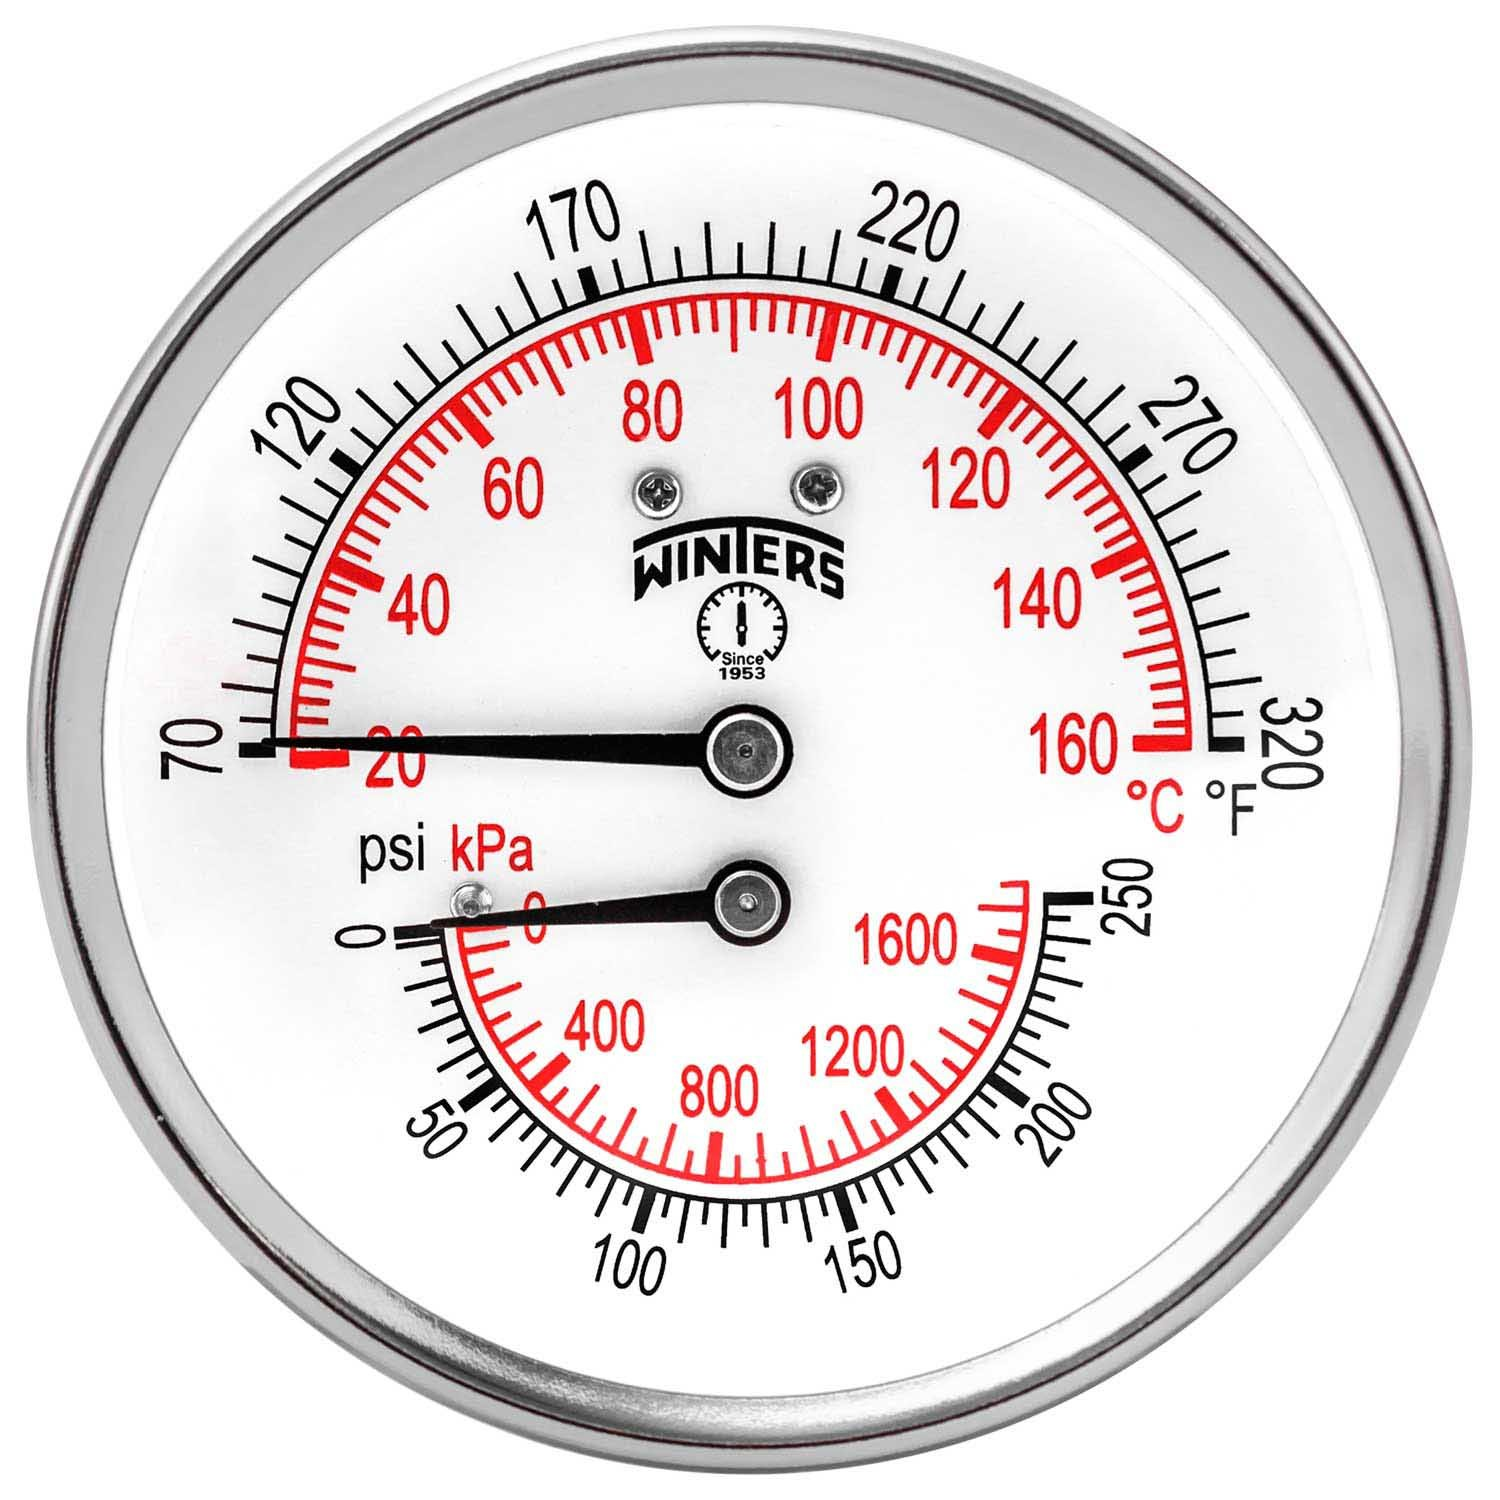 Winters TTD Series Steel Dual Scale Tridicator Thermometer with 2'' Stem, 0-250psi/kpa, 3'' Dial Display, ±3-2-3% Accuracy, 1/2'' NPT Back Mount, 70-320 Deg F/C